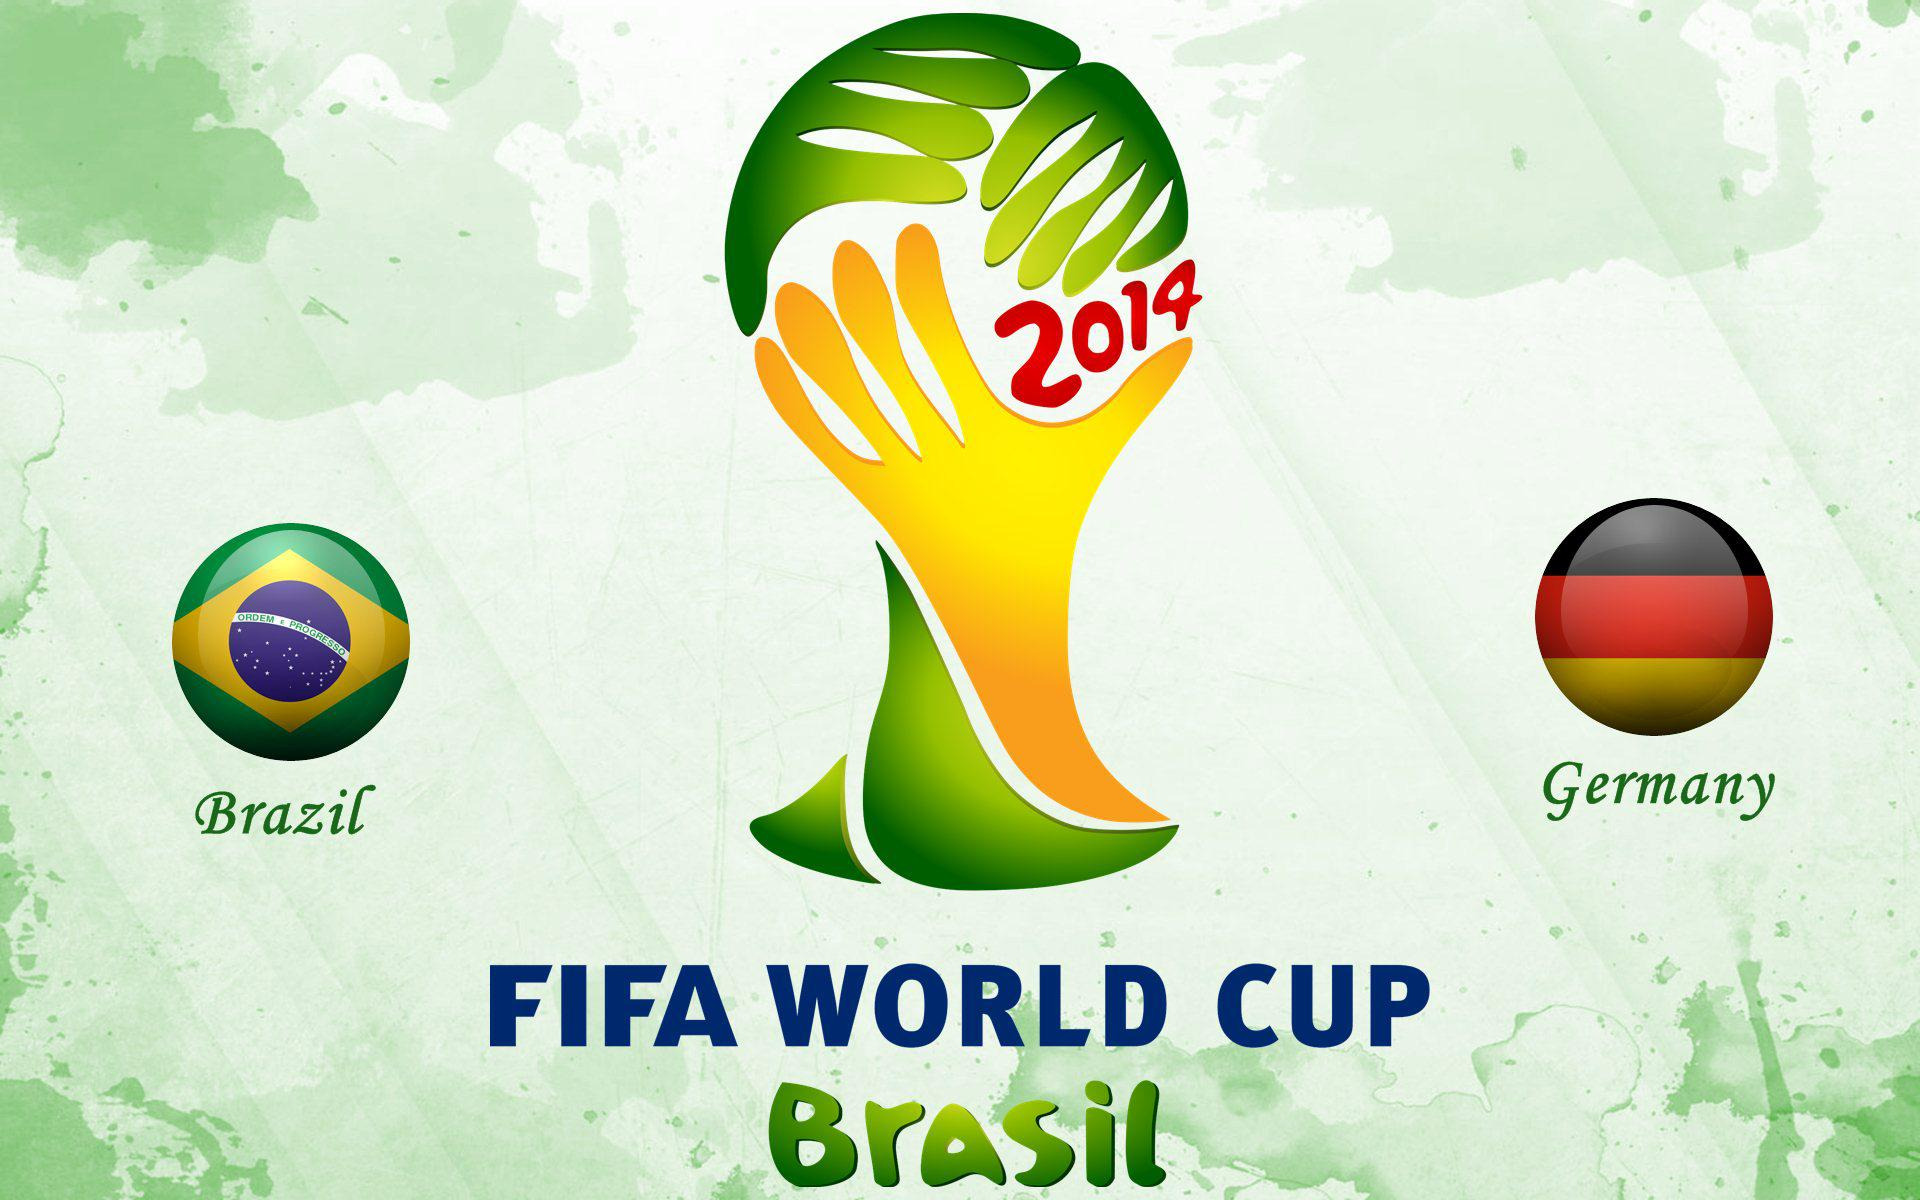 Germany Vs Brazil World Cup 2014 Semi-Finals